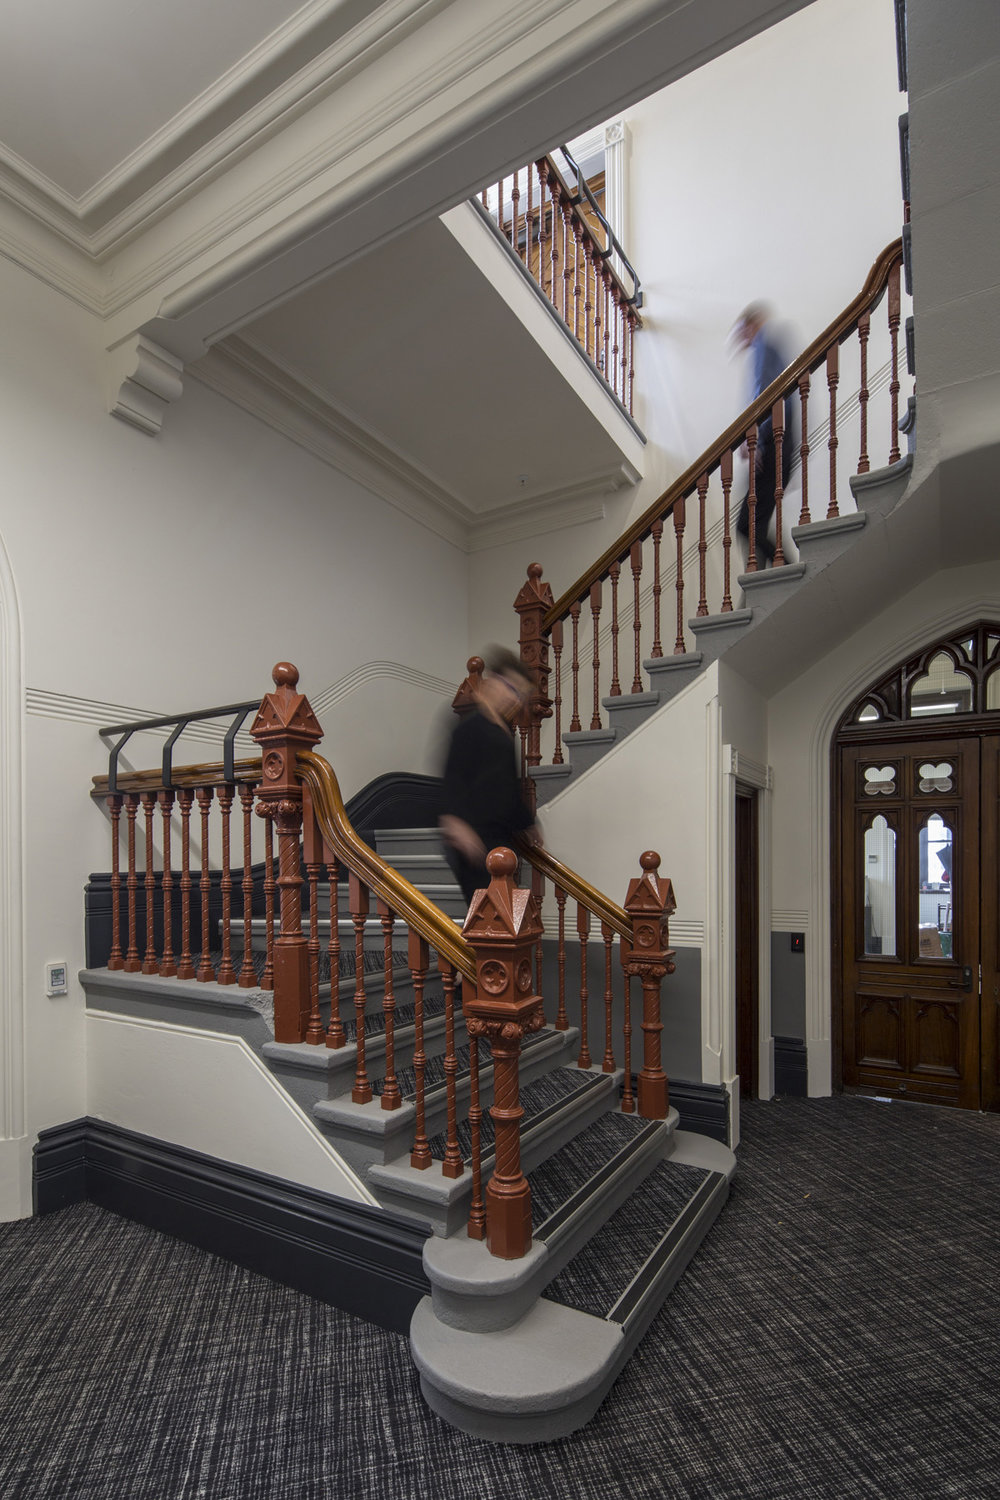 Dunedin Law Courts_Main Stair Detail_5 of 9 low res.jpg